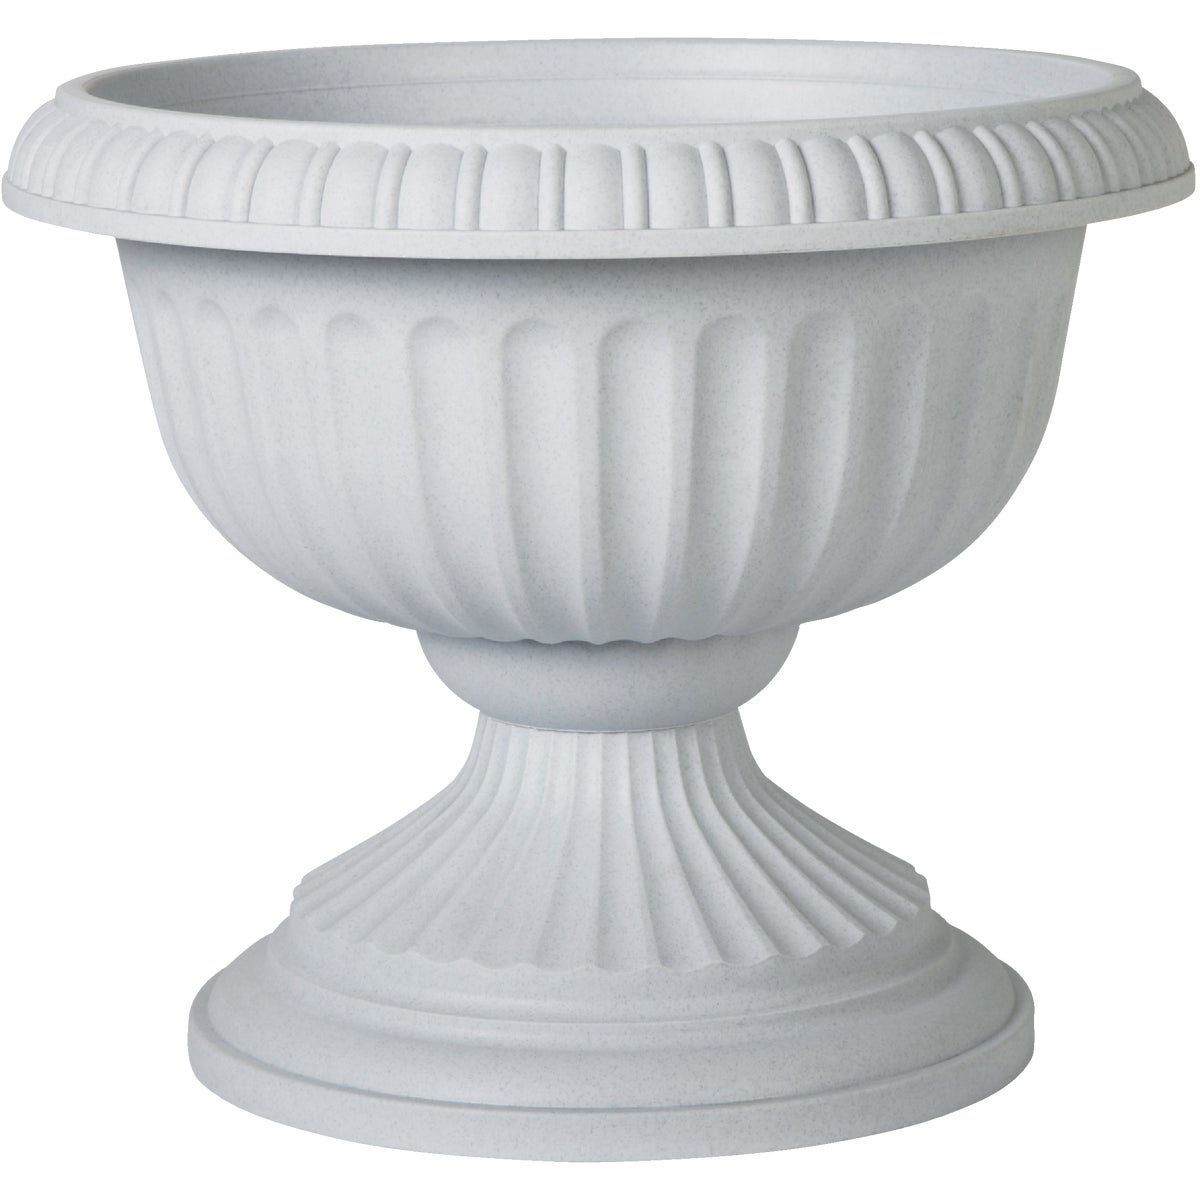 "18"" STONE POLY URN - 39186 by Novelty Mfg Co"